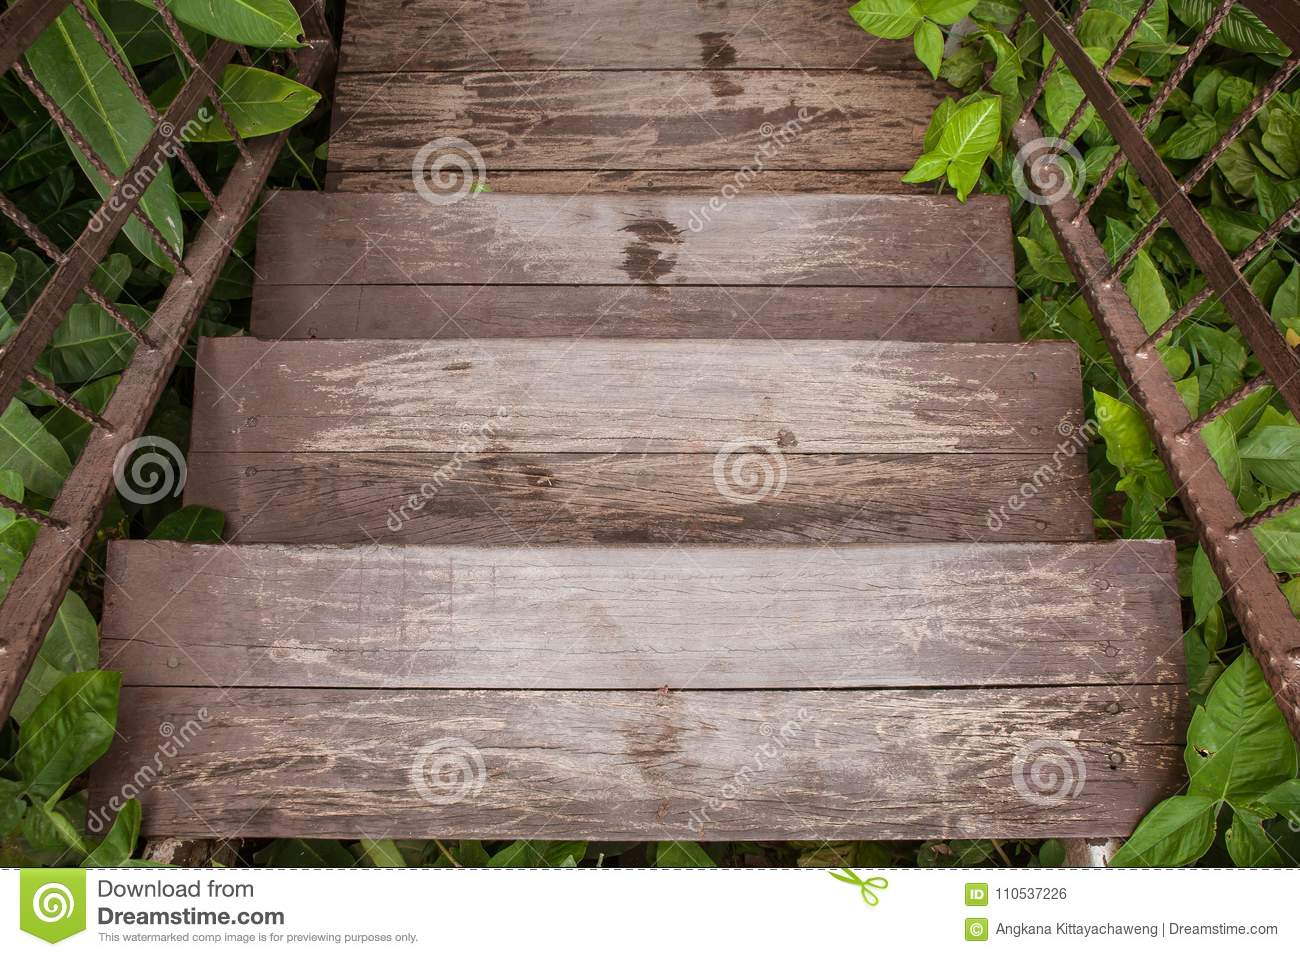 Wooden stairs or walkway go down to outdoor garden surrounded with green trees.